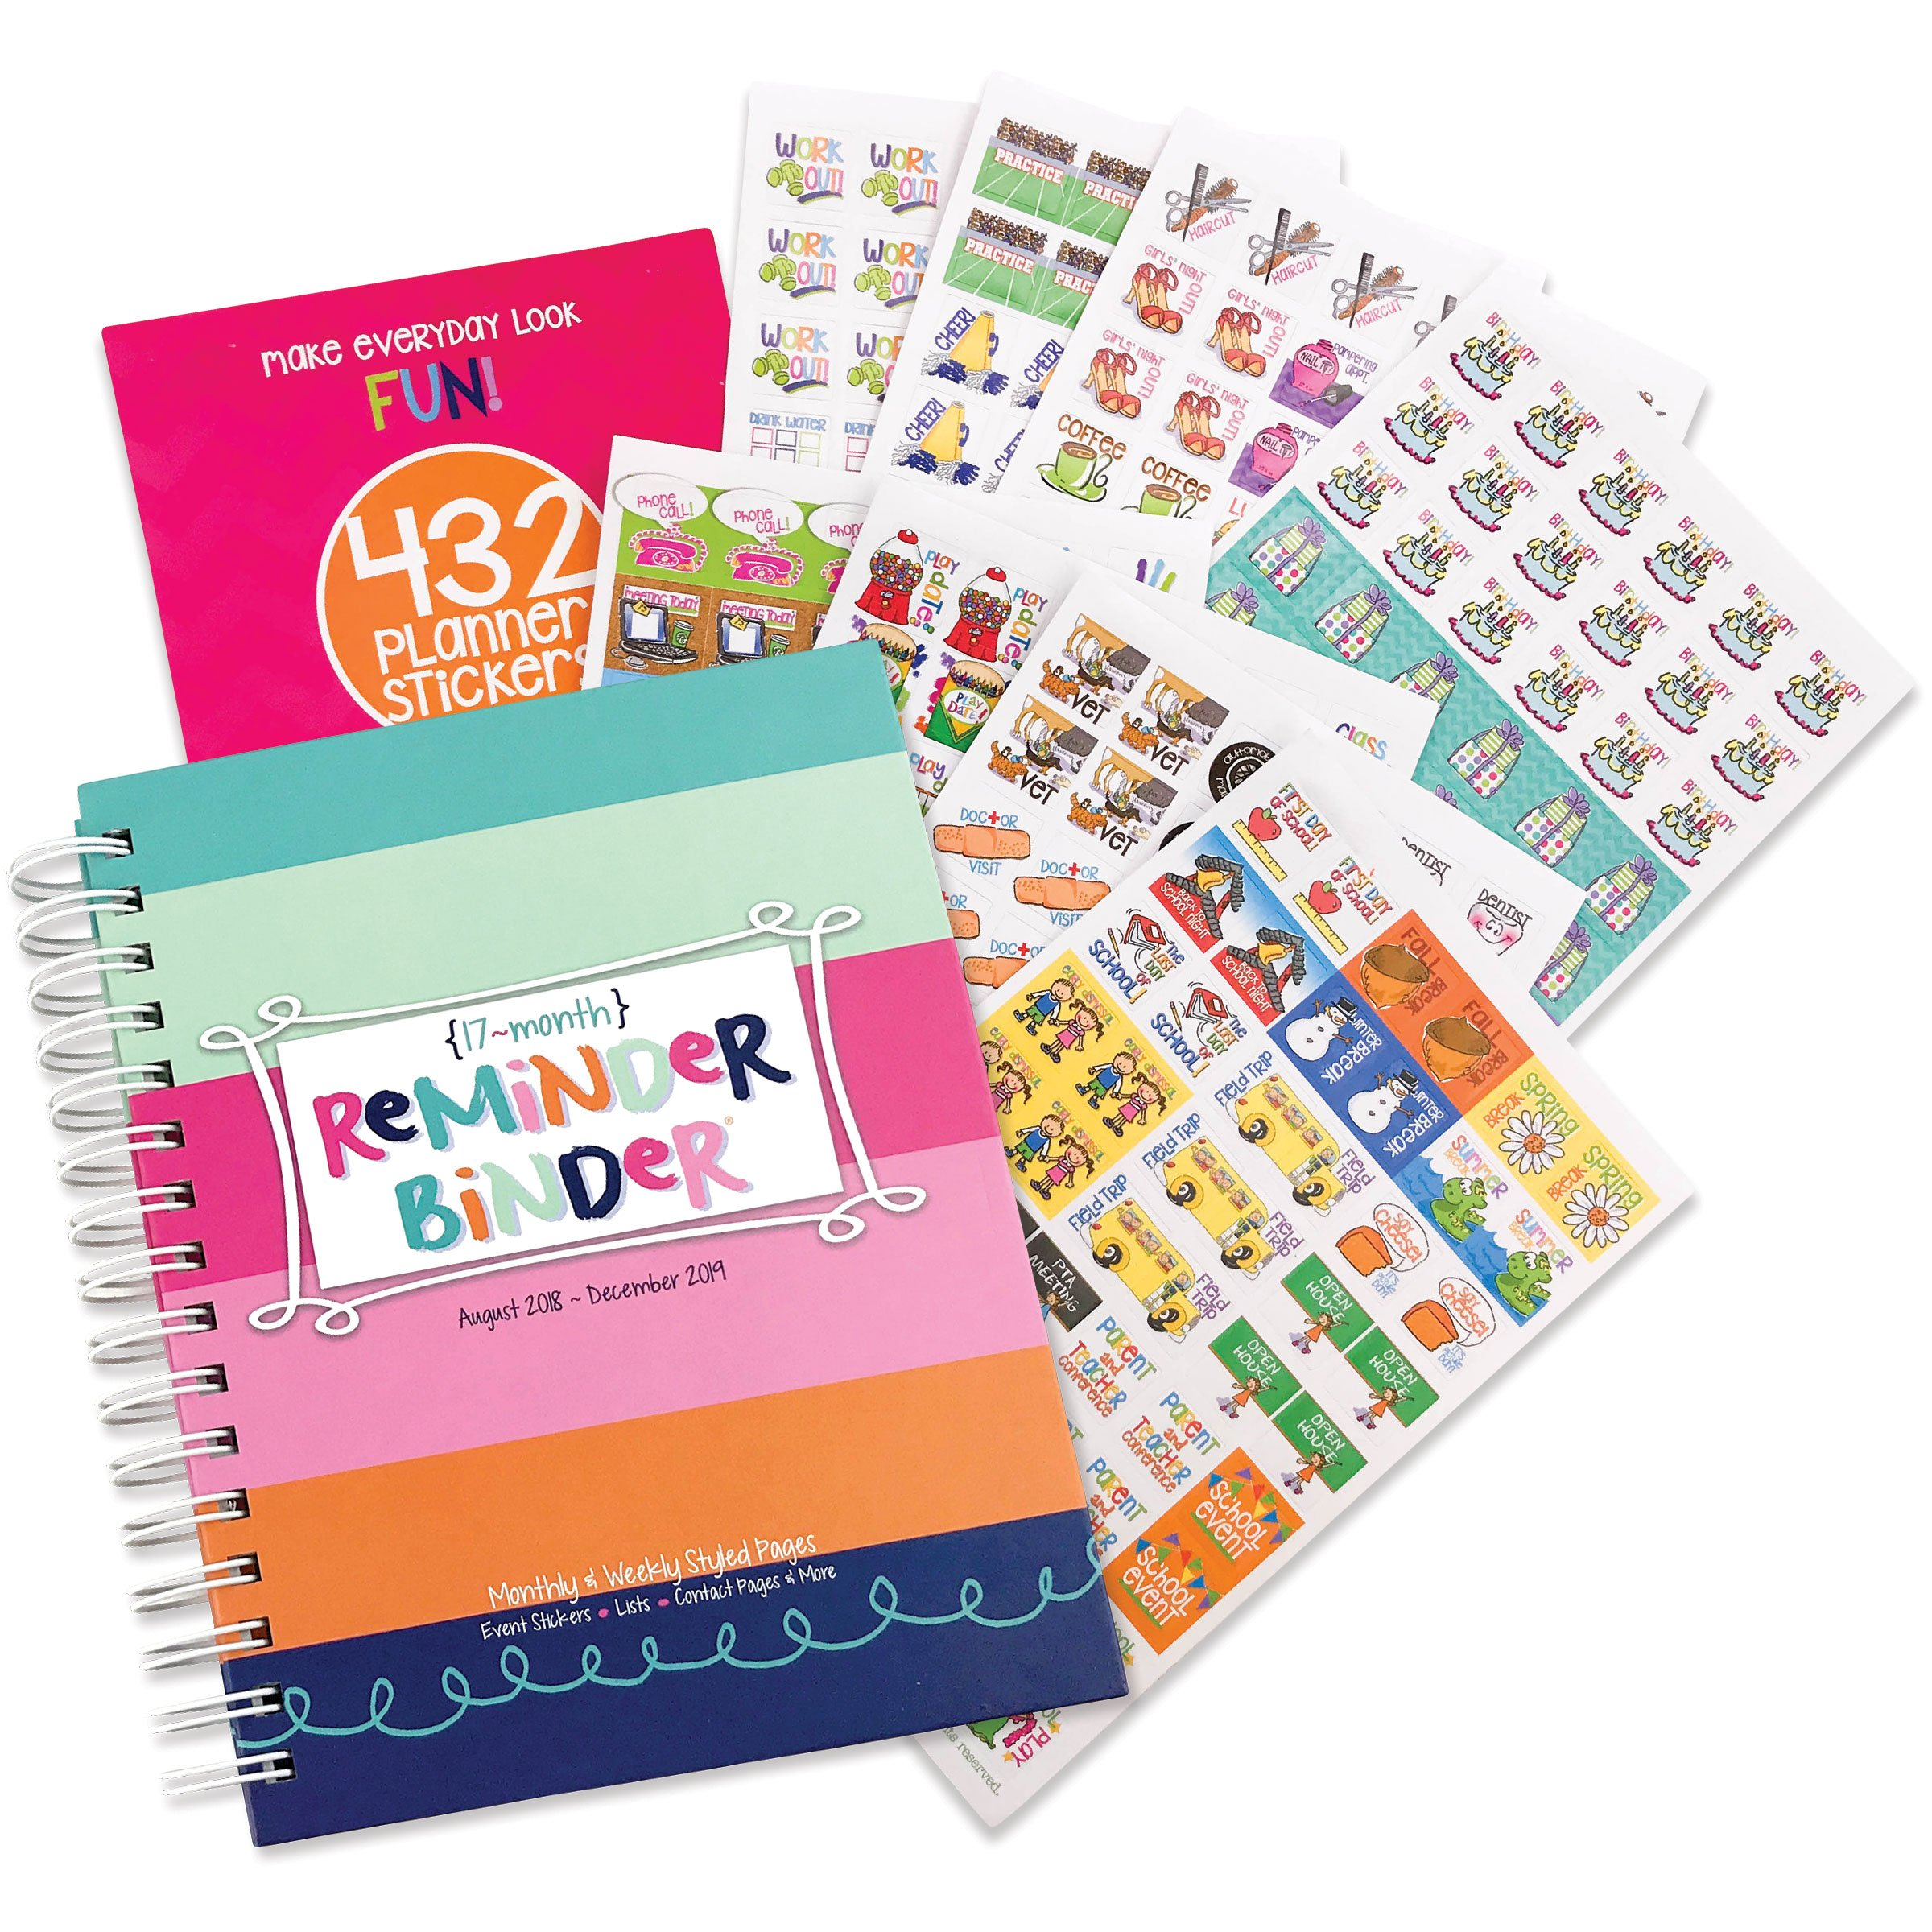 2018-2019 (17-Month) Planner & Variety Sticker Set - Weekly & Monthly Horizontal Layout, 6.5'' x 8.5'', Twin-Wire Binding, Hard Cover, Elastic Closure, Checklists, Pockets & Dividers by Reminder Binder